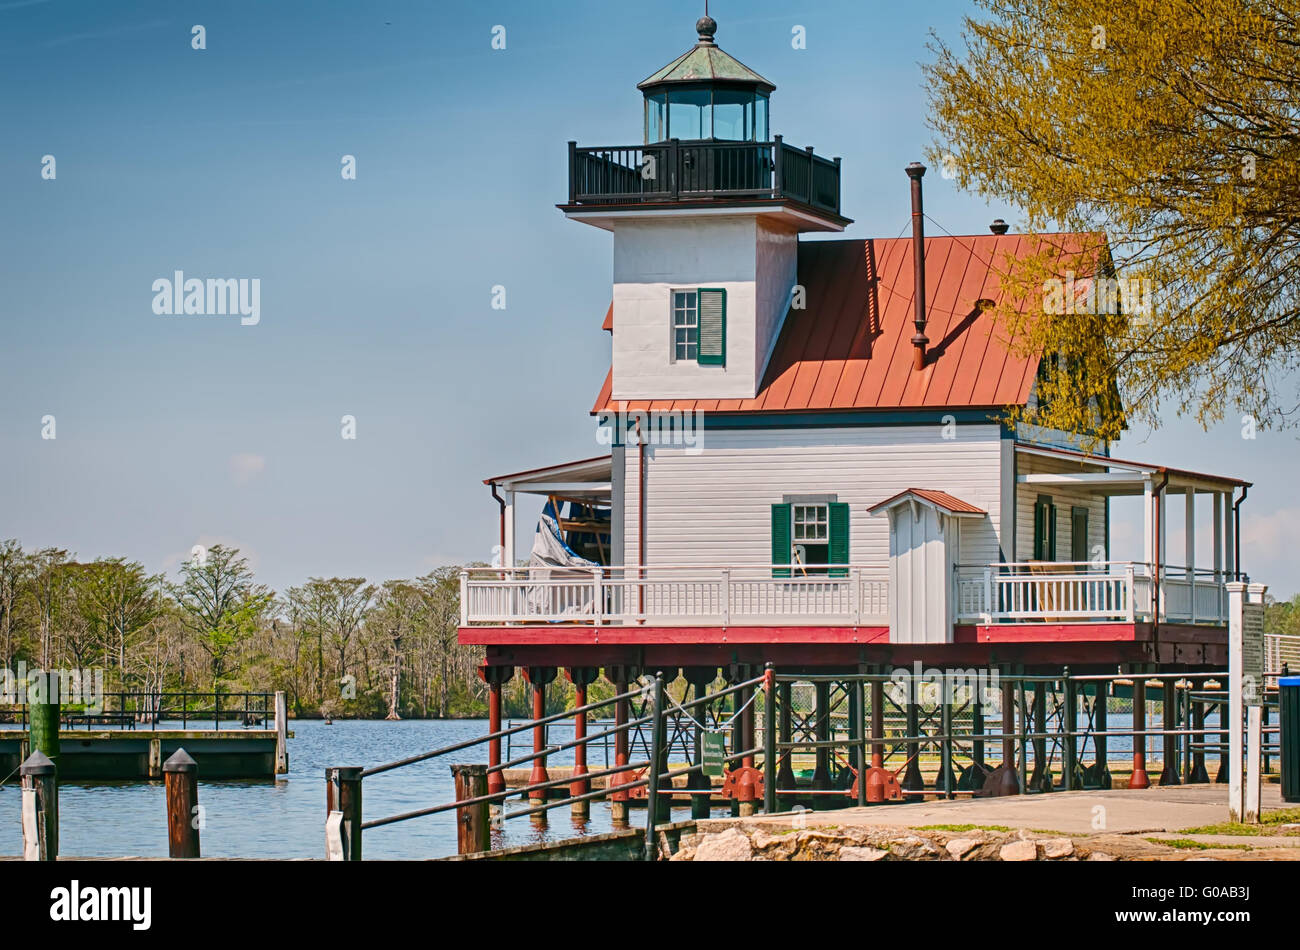 town of edenton roanoke river lighthouse in nc - Stock Image